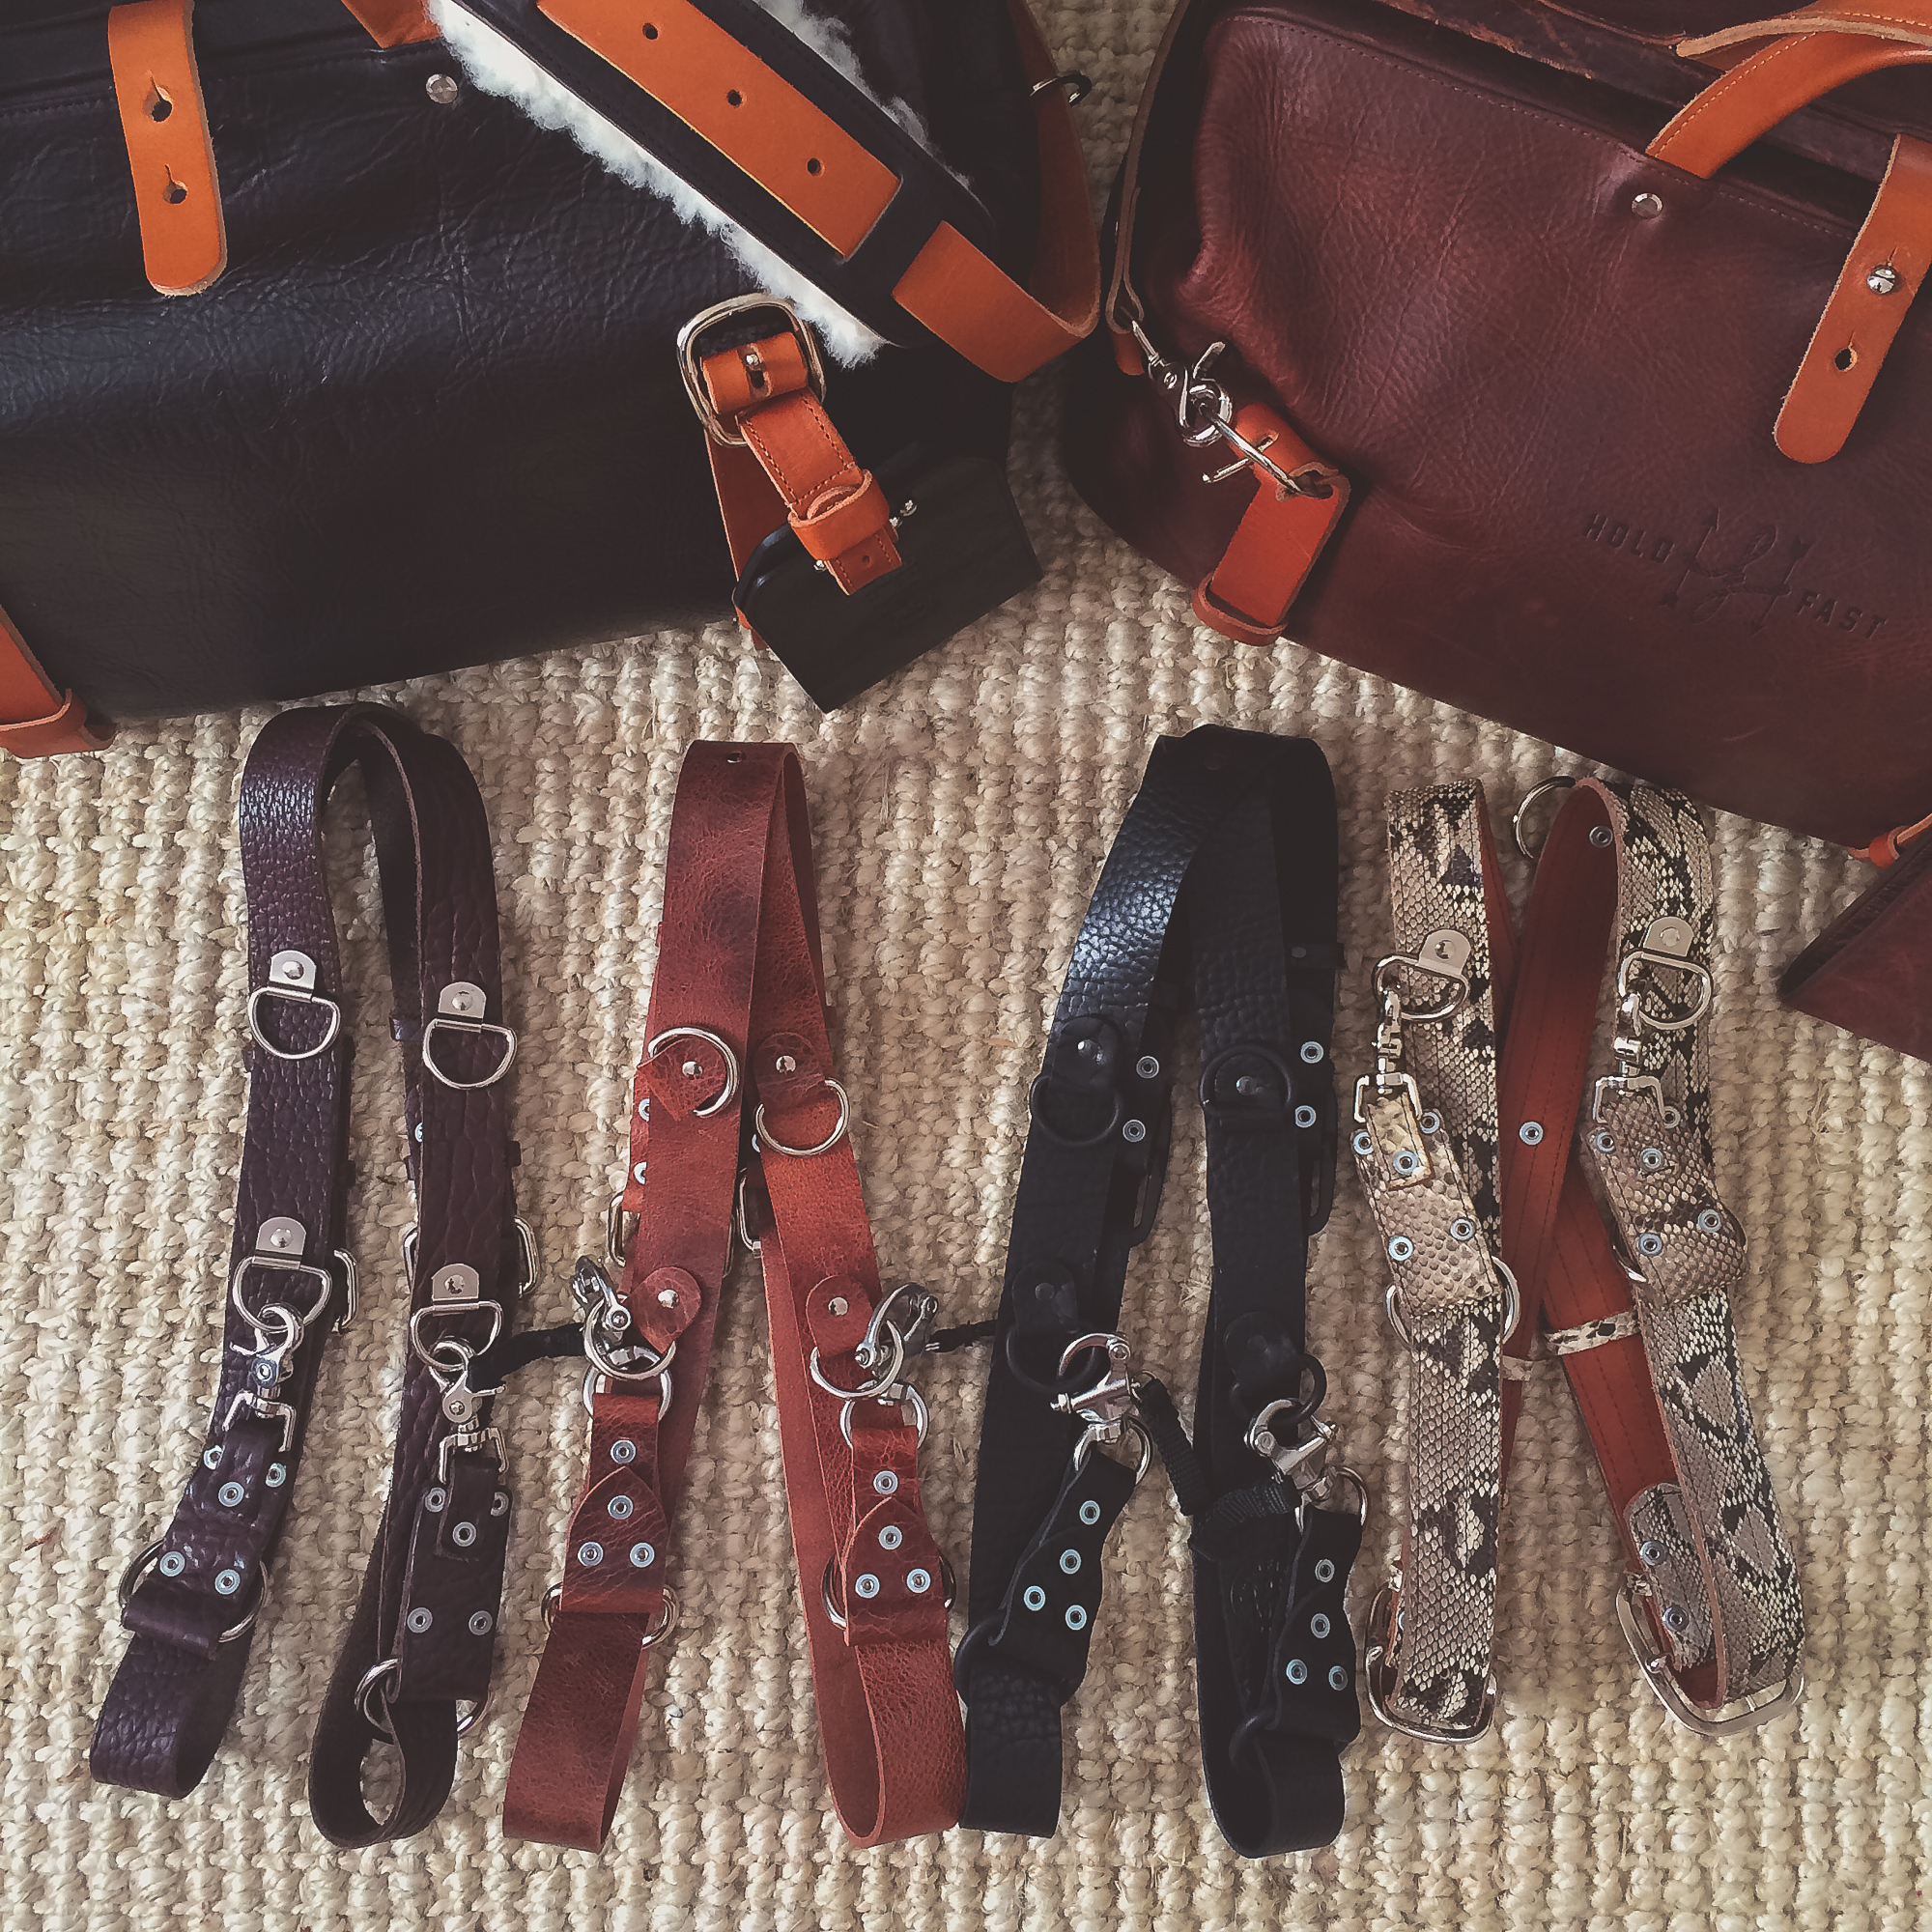 Our go to bags and camera straps:  Hold Fast Gear